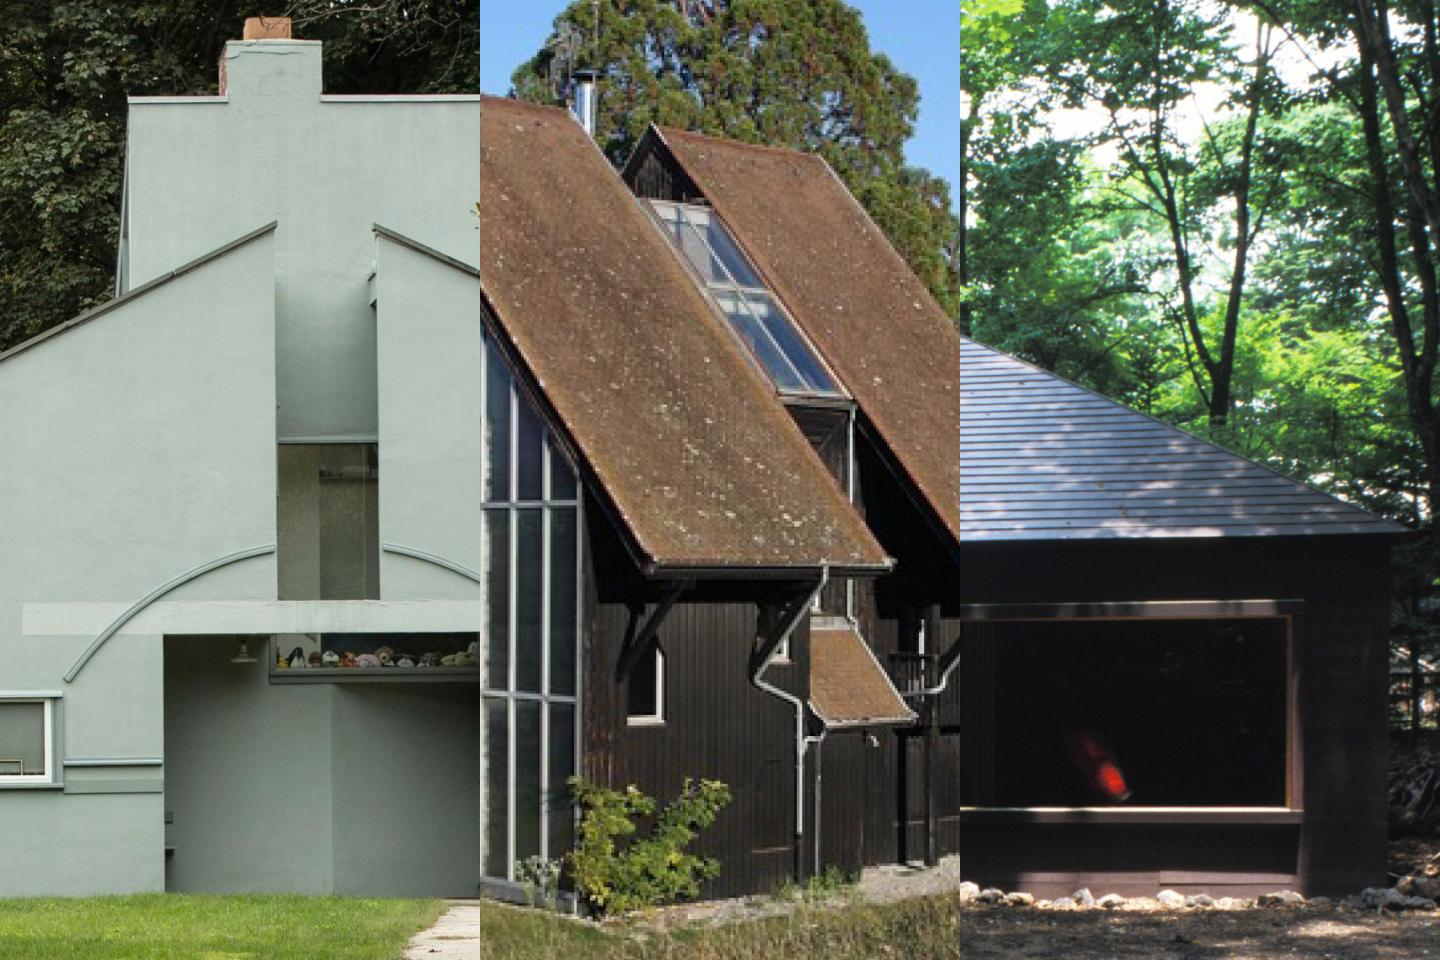 Sections of three post-modern houses side by side